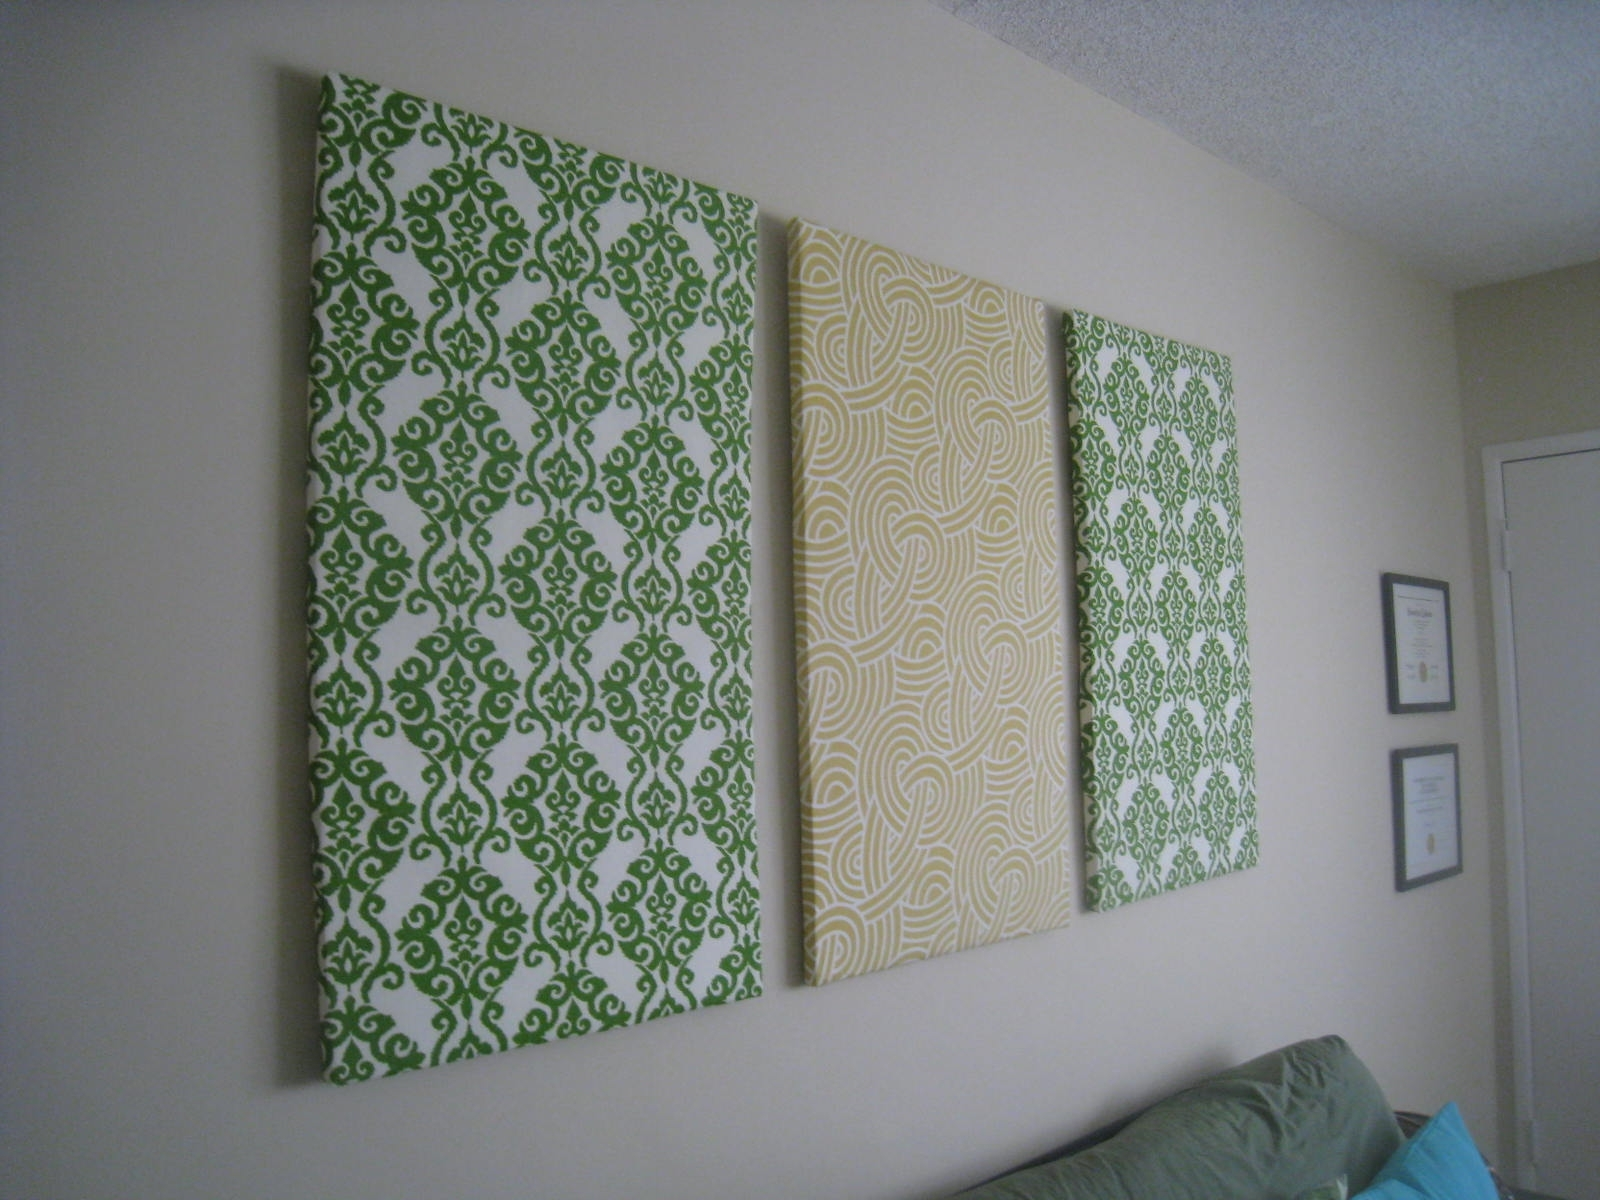 Diy Fabric Wall Art | Crafting Is Sanity With Regard To 2018 Foam Fabric Wall Art (View 1 of 15)